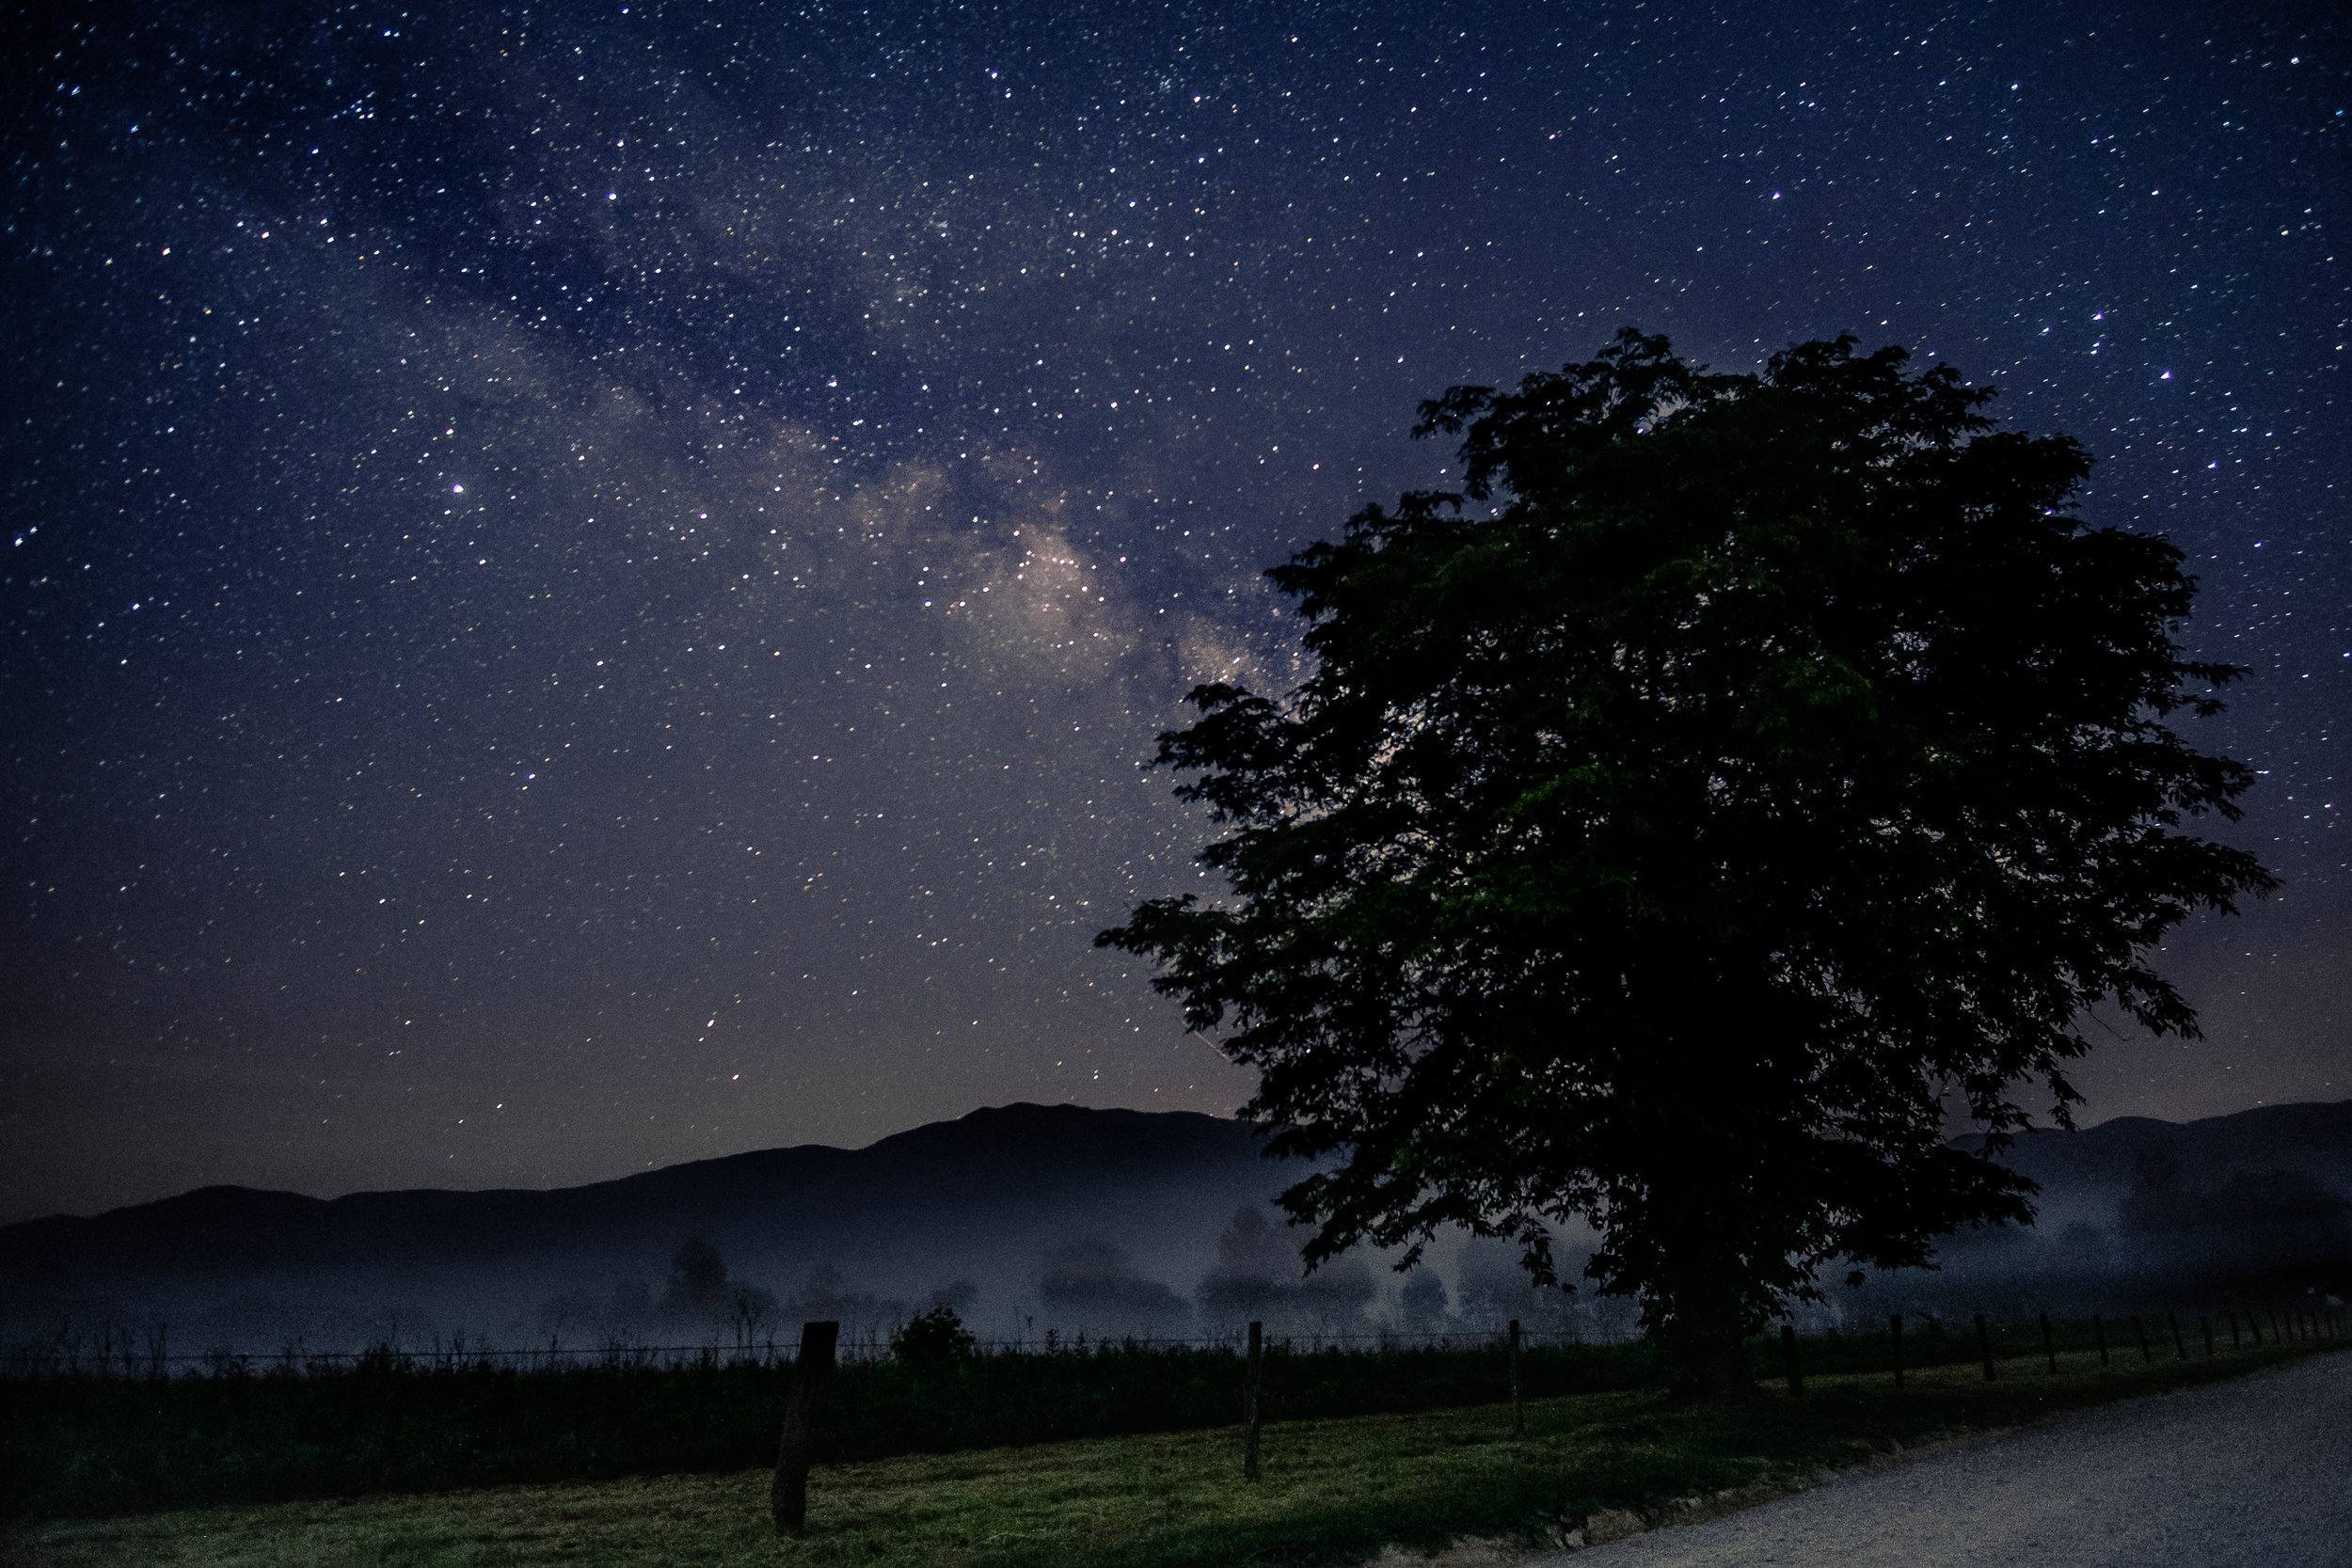 Milky Way over Cades Cove In the Great Smoky Mountains National Park